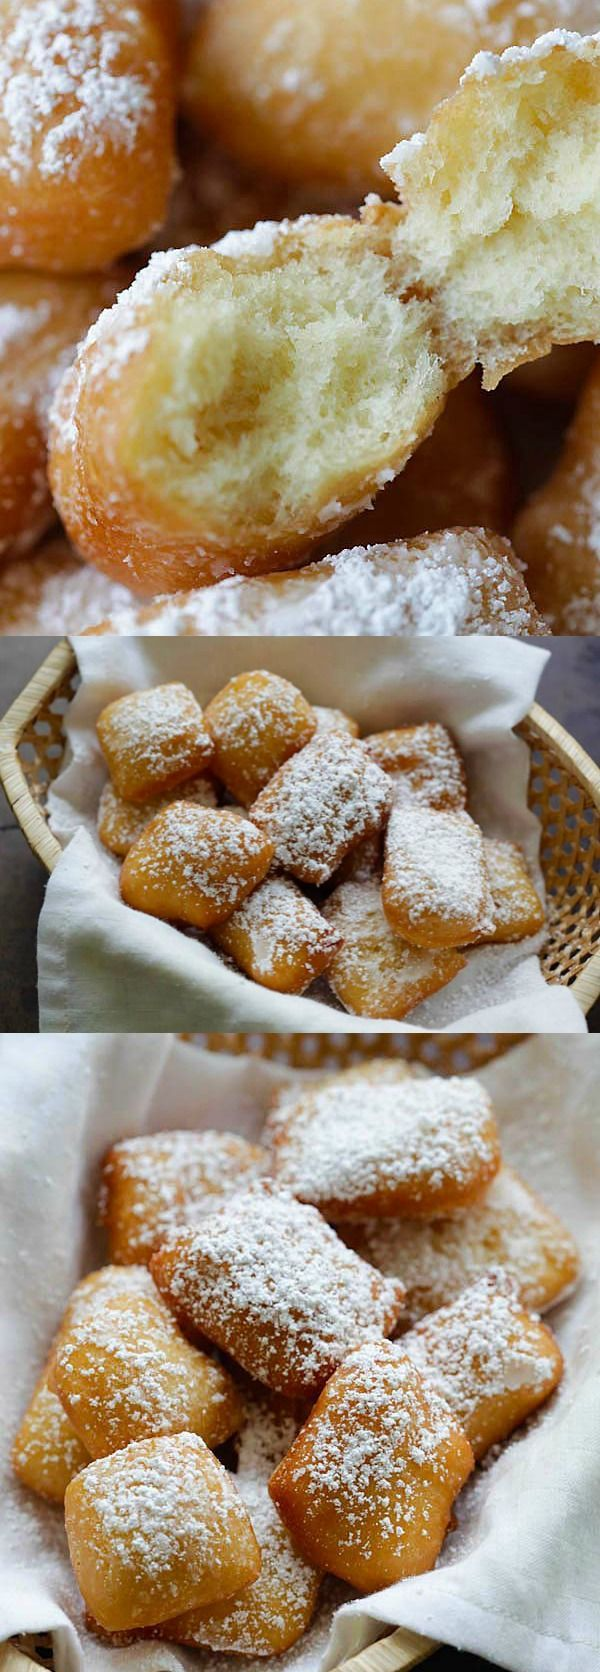 Soft, pillowy and the best New Orleans beignets recipe ever. This recipe is fail-proof, anyone can make it | http://rasamalaysia.com